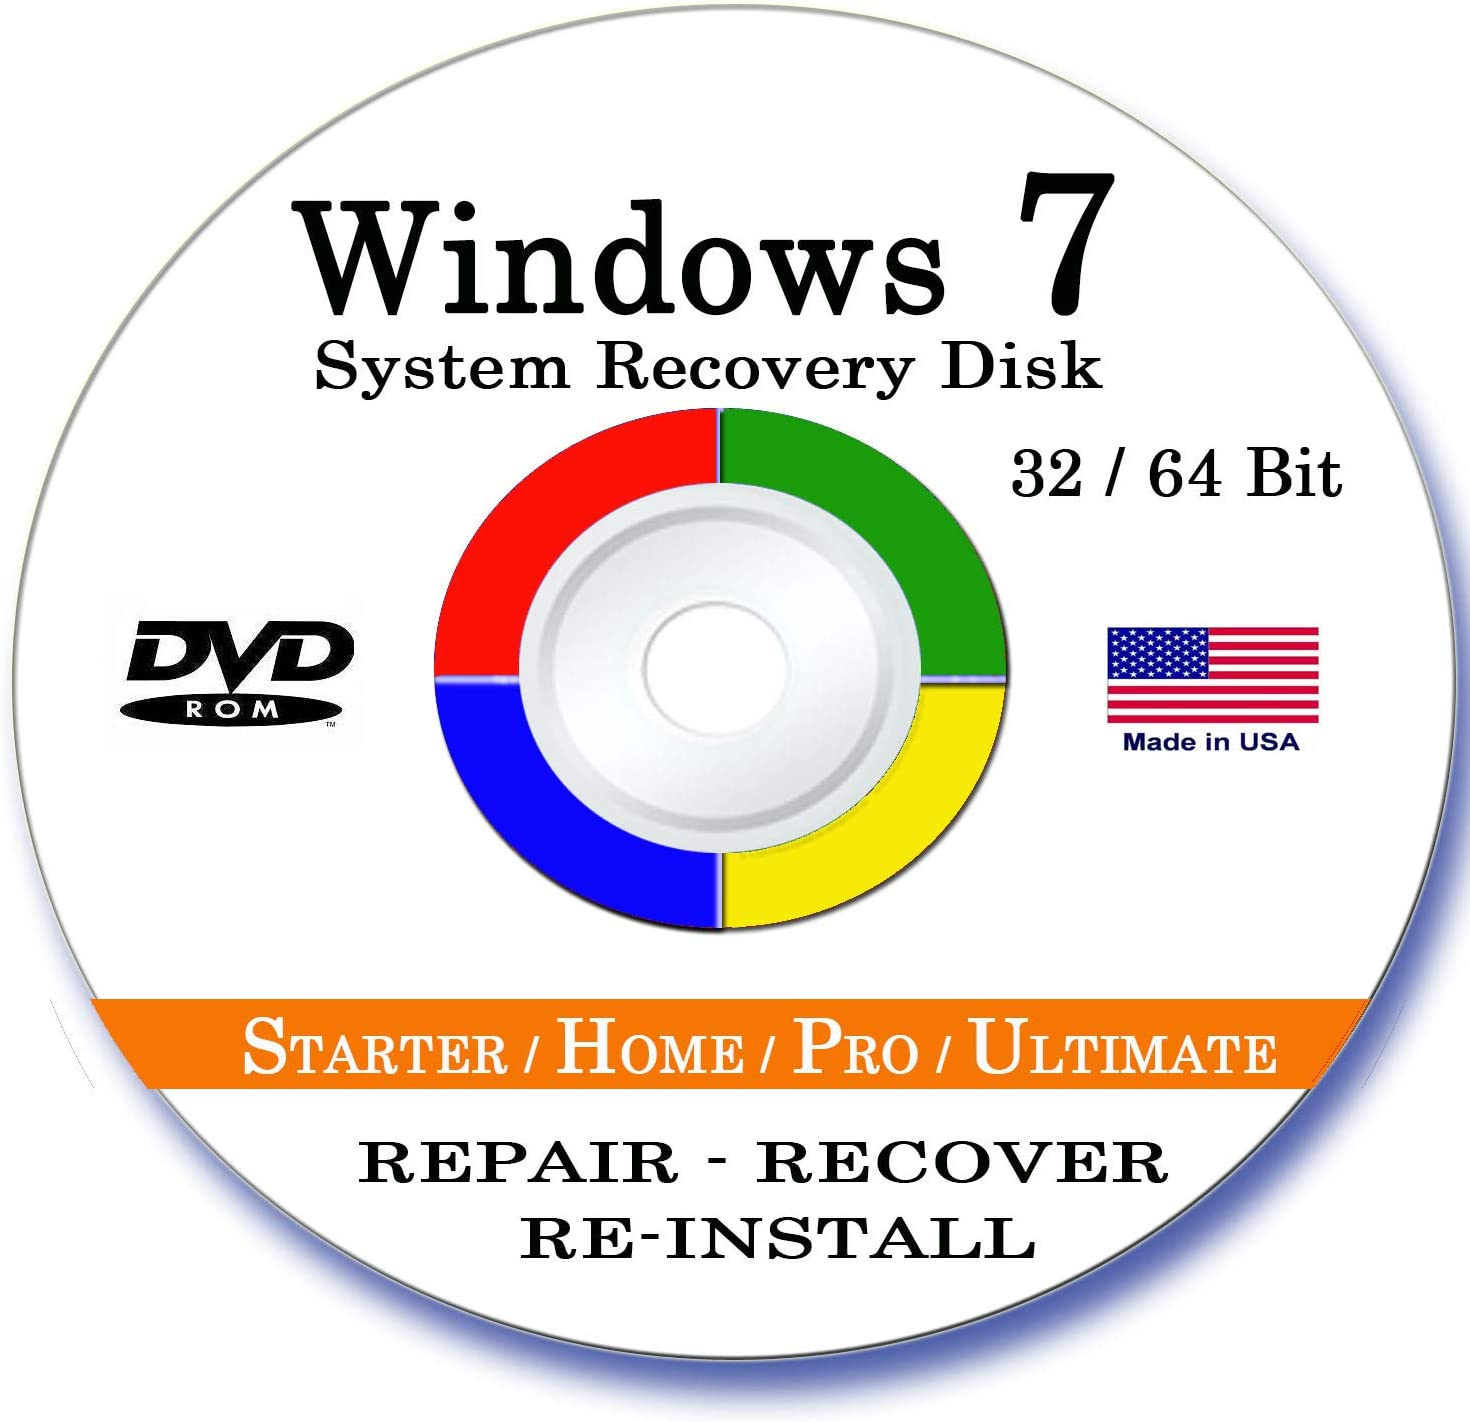 Windows 7 Home Premium 32 / 64 Bit Reinstall Reinstallation Re install Recovery Restore Fix Boot Disk Disc CD - For All Make/Model PCs including HP, Lenovo, Dell, Toshiba, Sony, ASUS